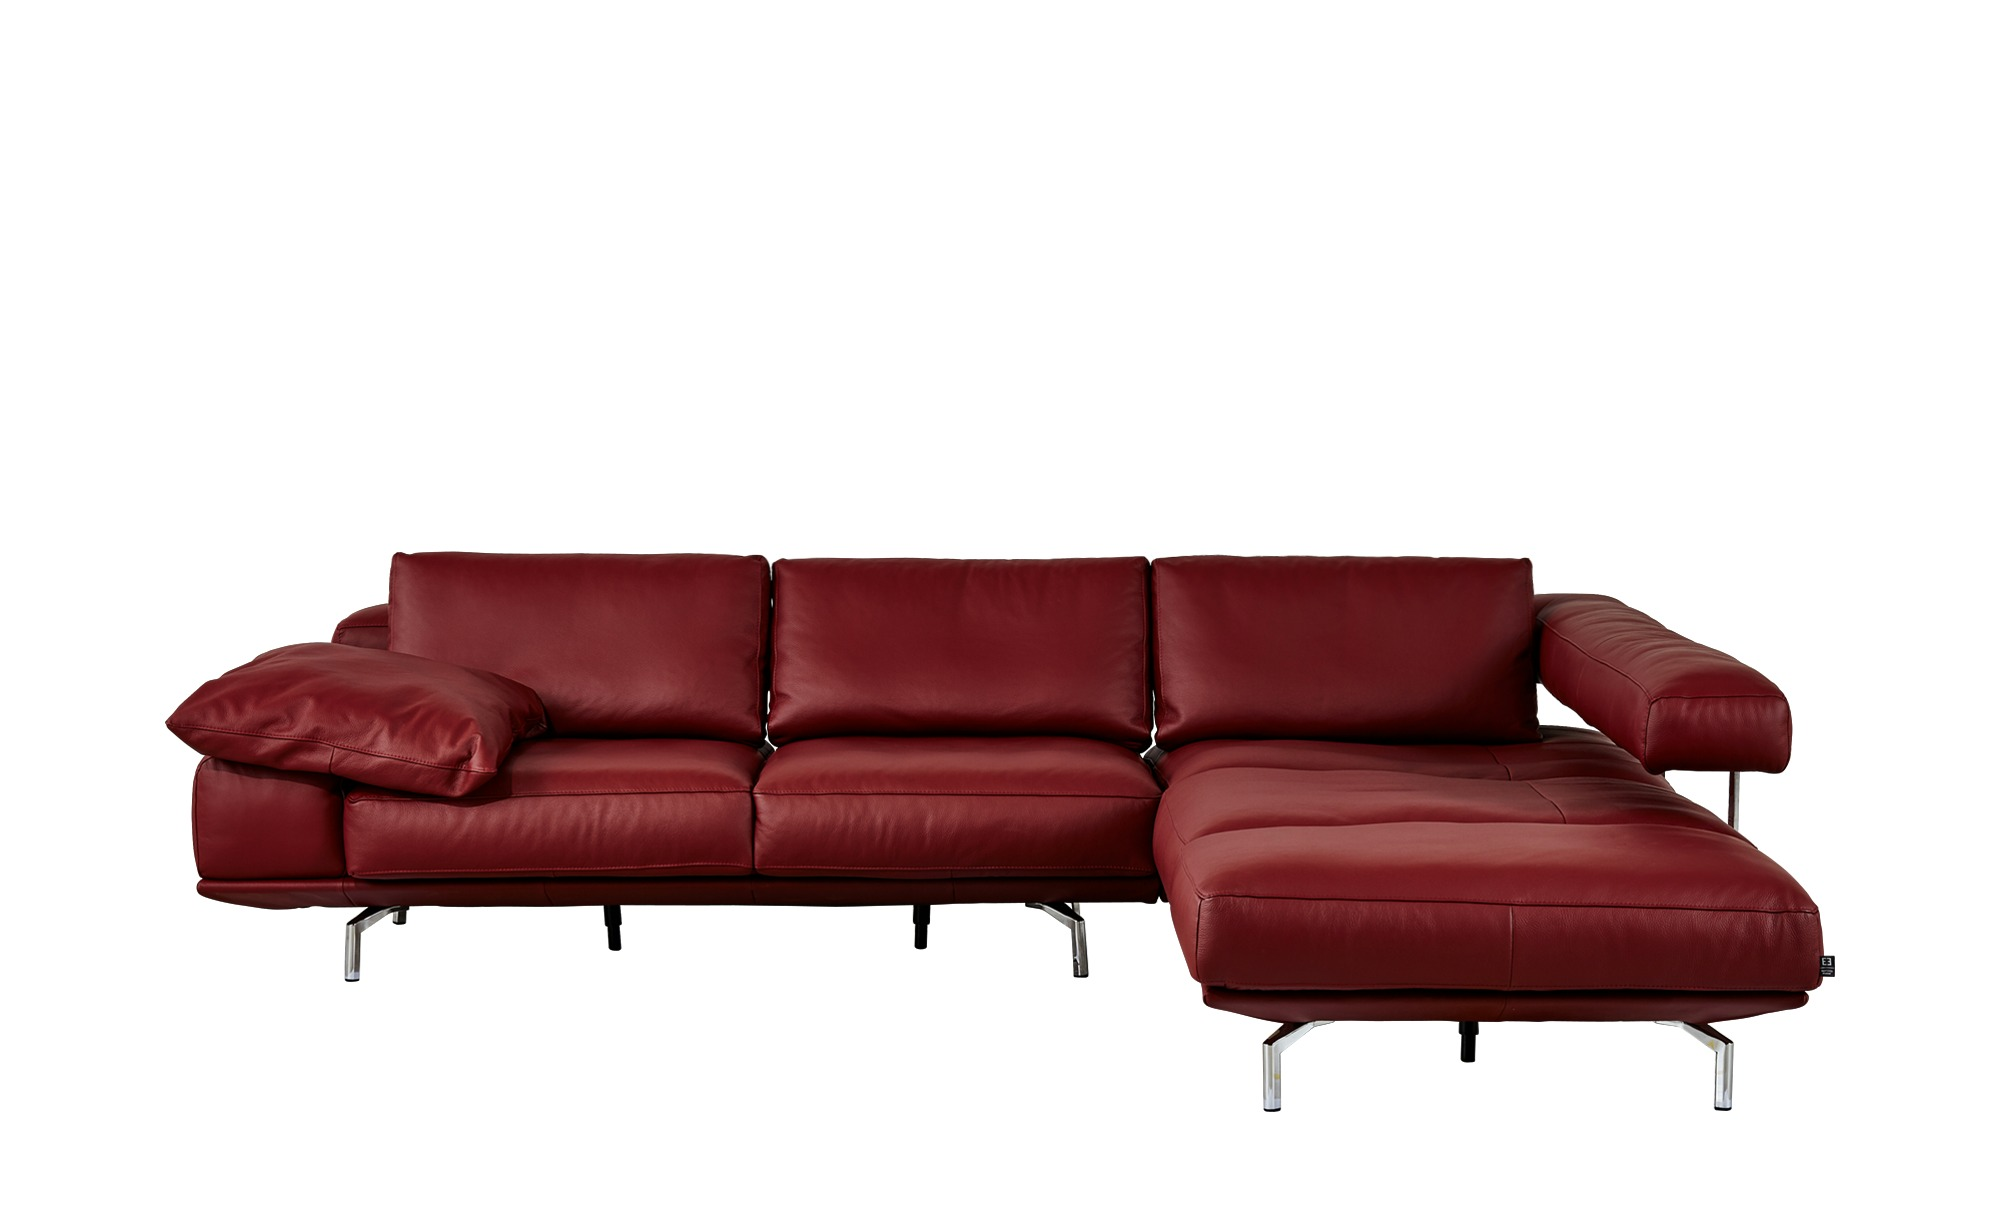 design ecksofa shine breite h he 86 cm rot online kaufen bei woonio. Black Bedroom Furniture Sets. Home Design Ideas